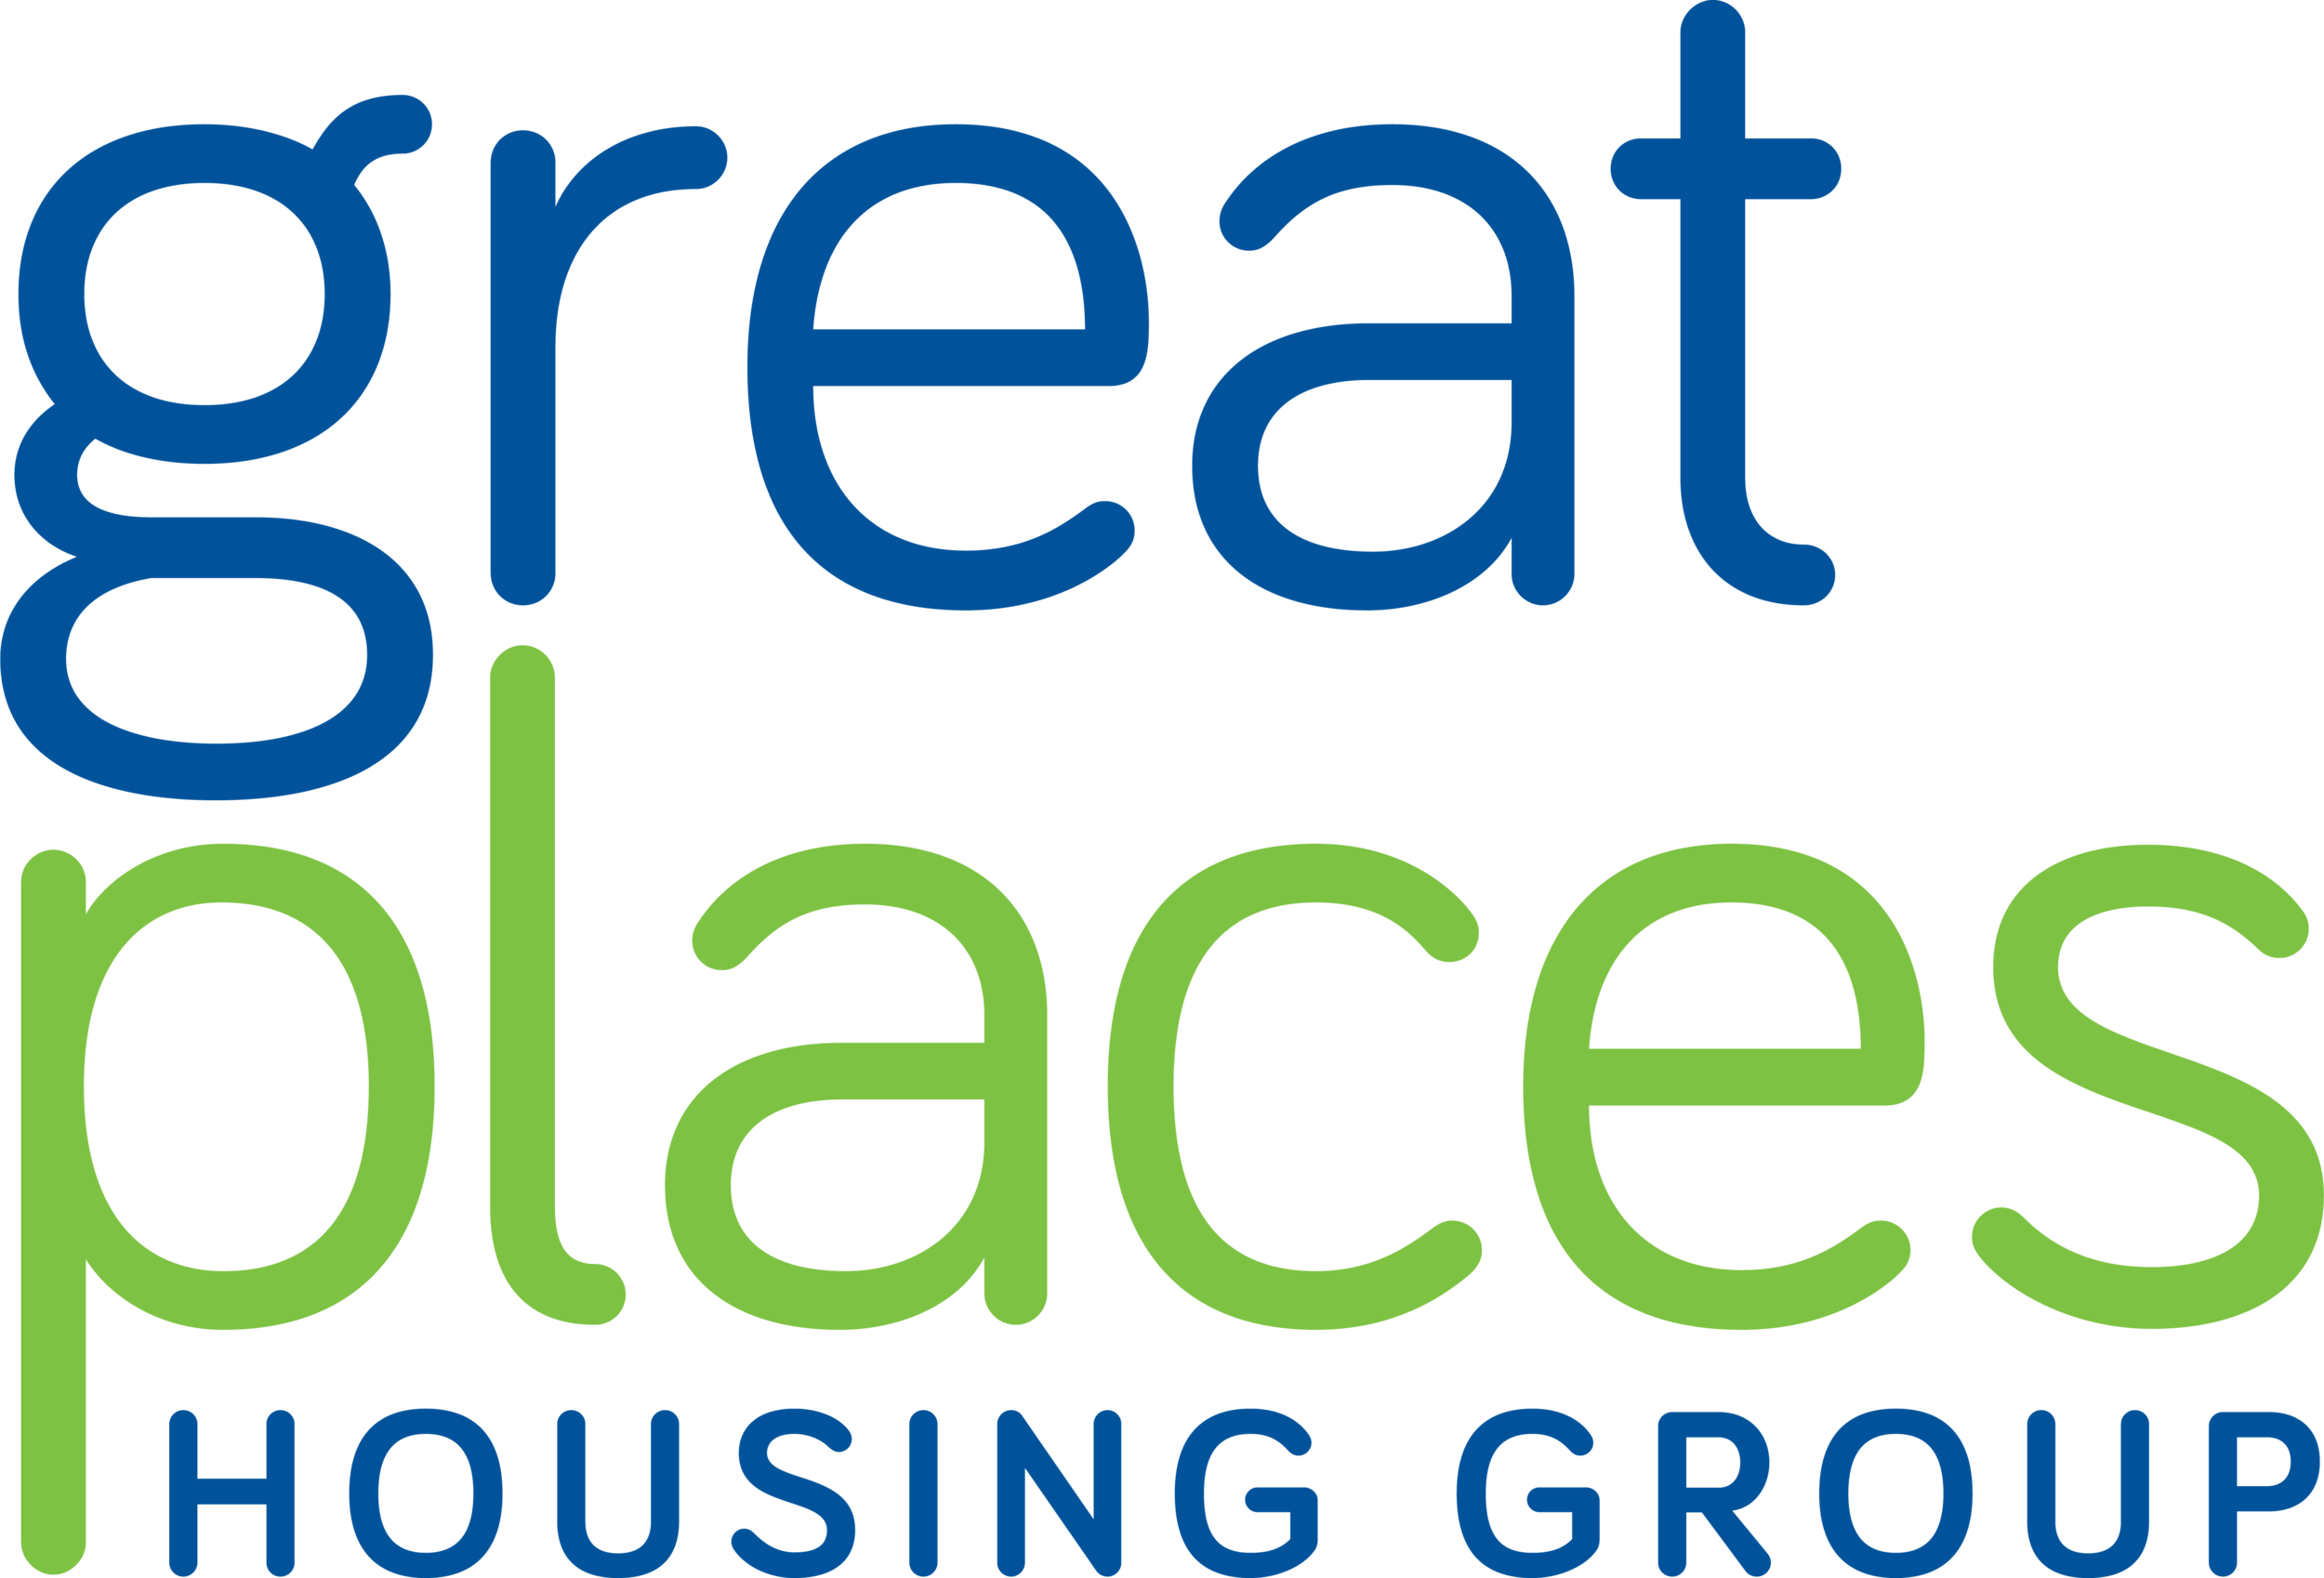 Great Places Housing Group.png